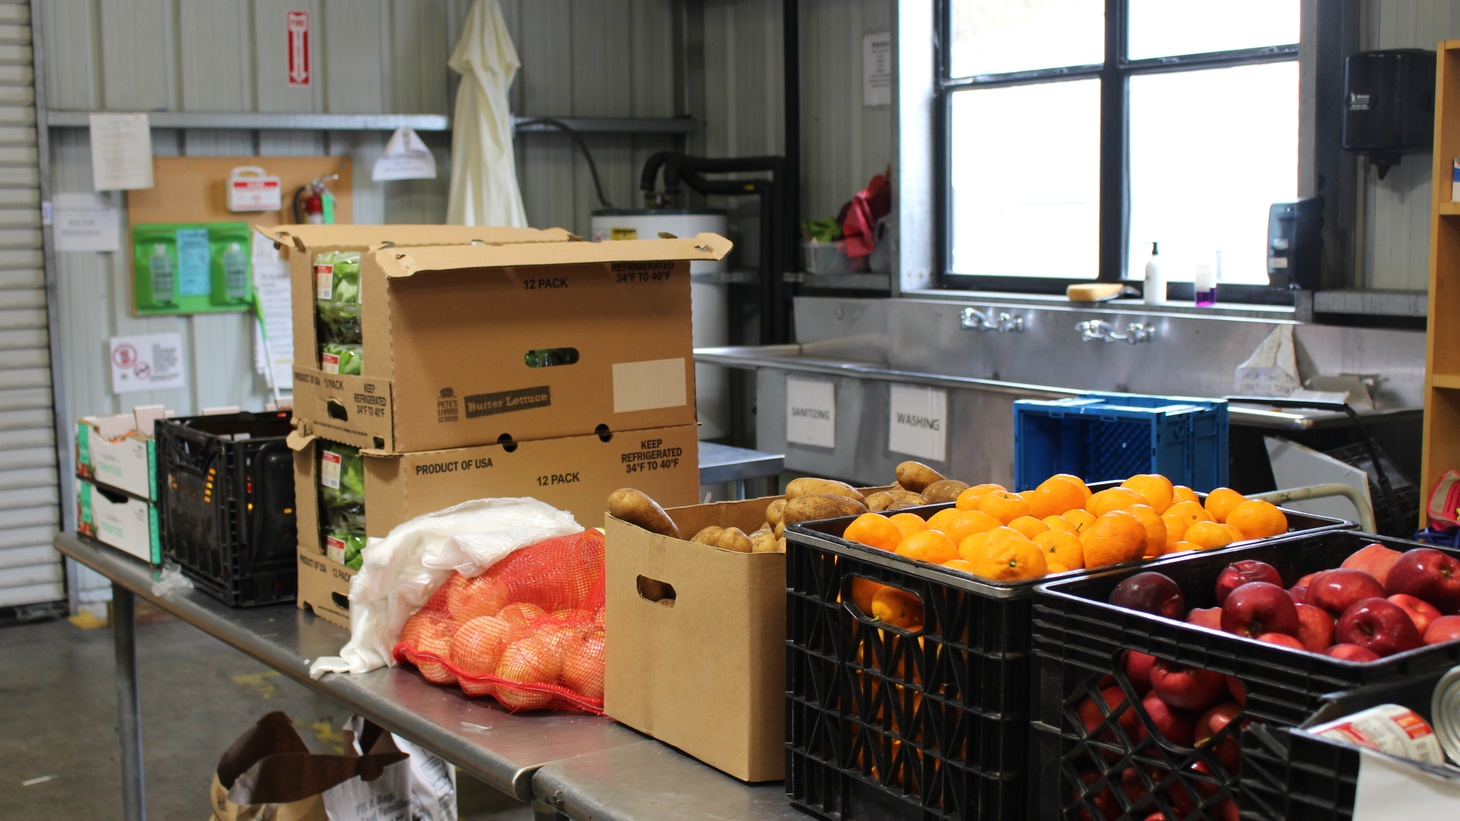 Hundreds of people living and working in Santa Barbara and Ventura have been working without pay as the federal government shutdown continues. Many of them picked up free food for themselves and their families at local food banks this week.